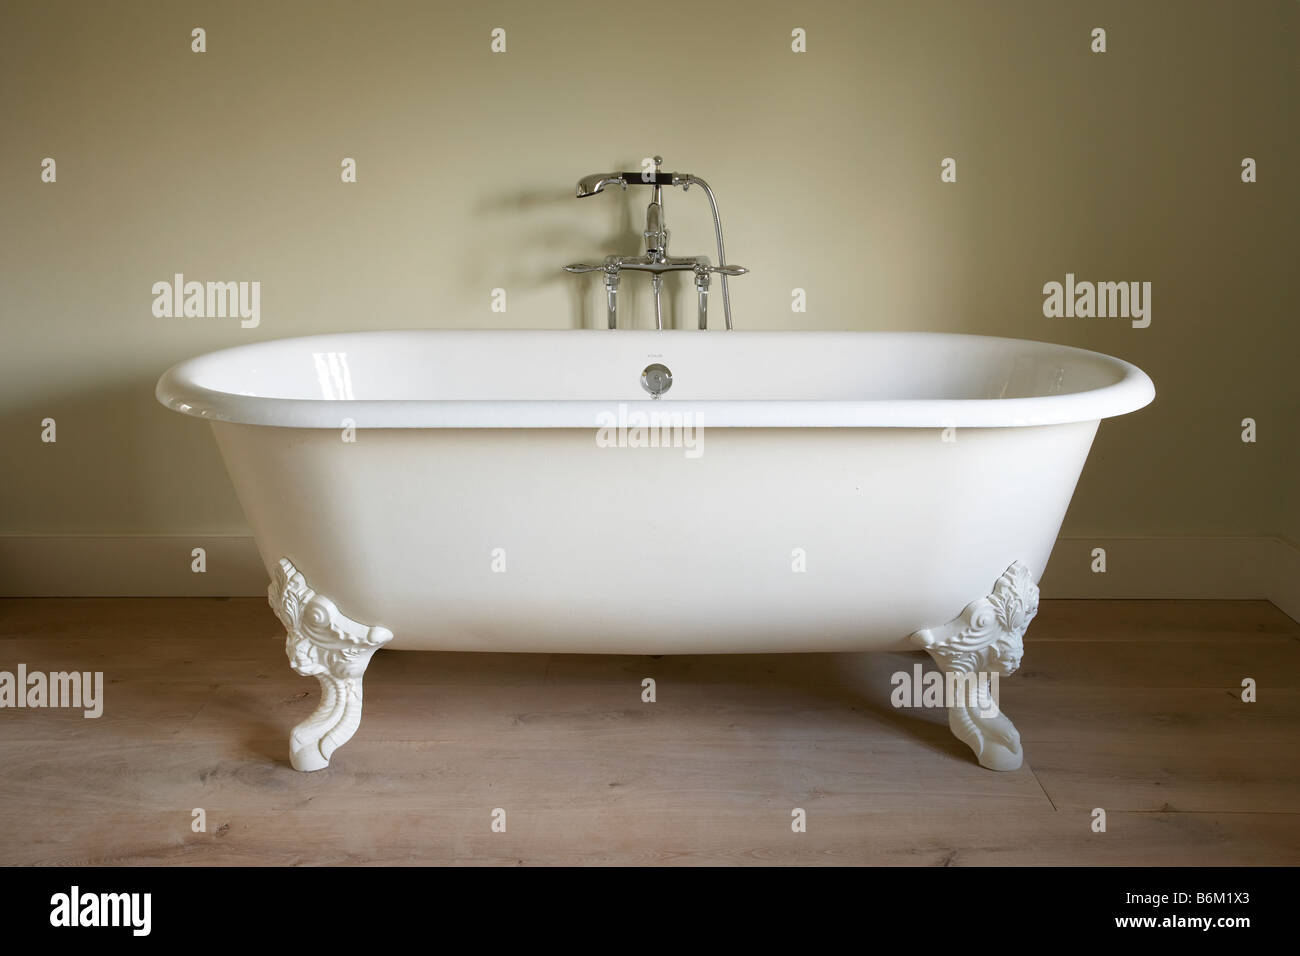 Comfortable Painting A Bathtub Thick Painting Bathtub Round Bath Refinishing Service Bathtub Repair Contractor Old Tub Refinishers Bright Can You Paint A Tub